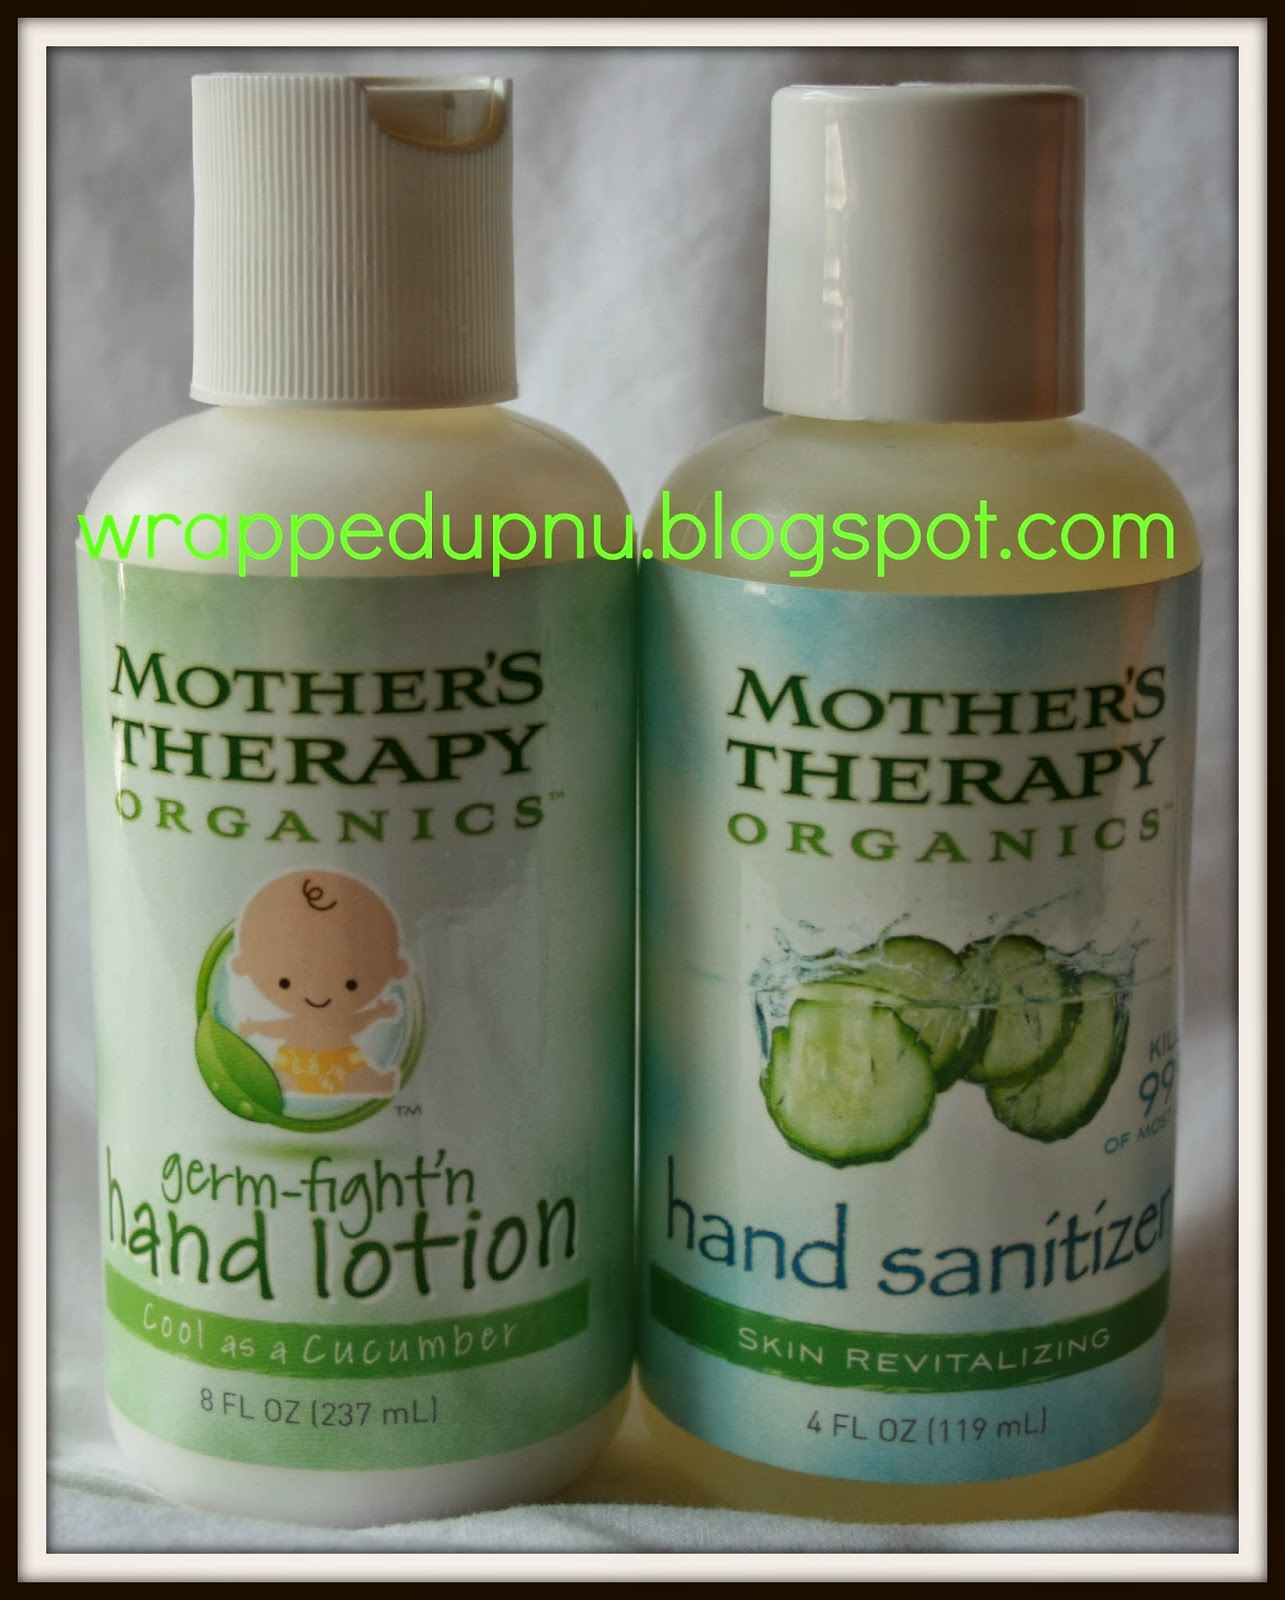 Mother S Therapy Organics Review And Giveaway Wrapped Up N U